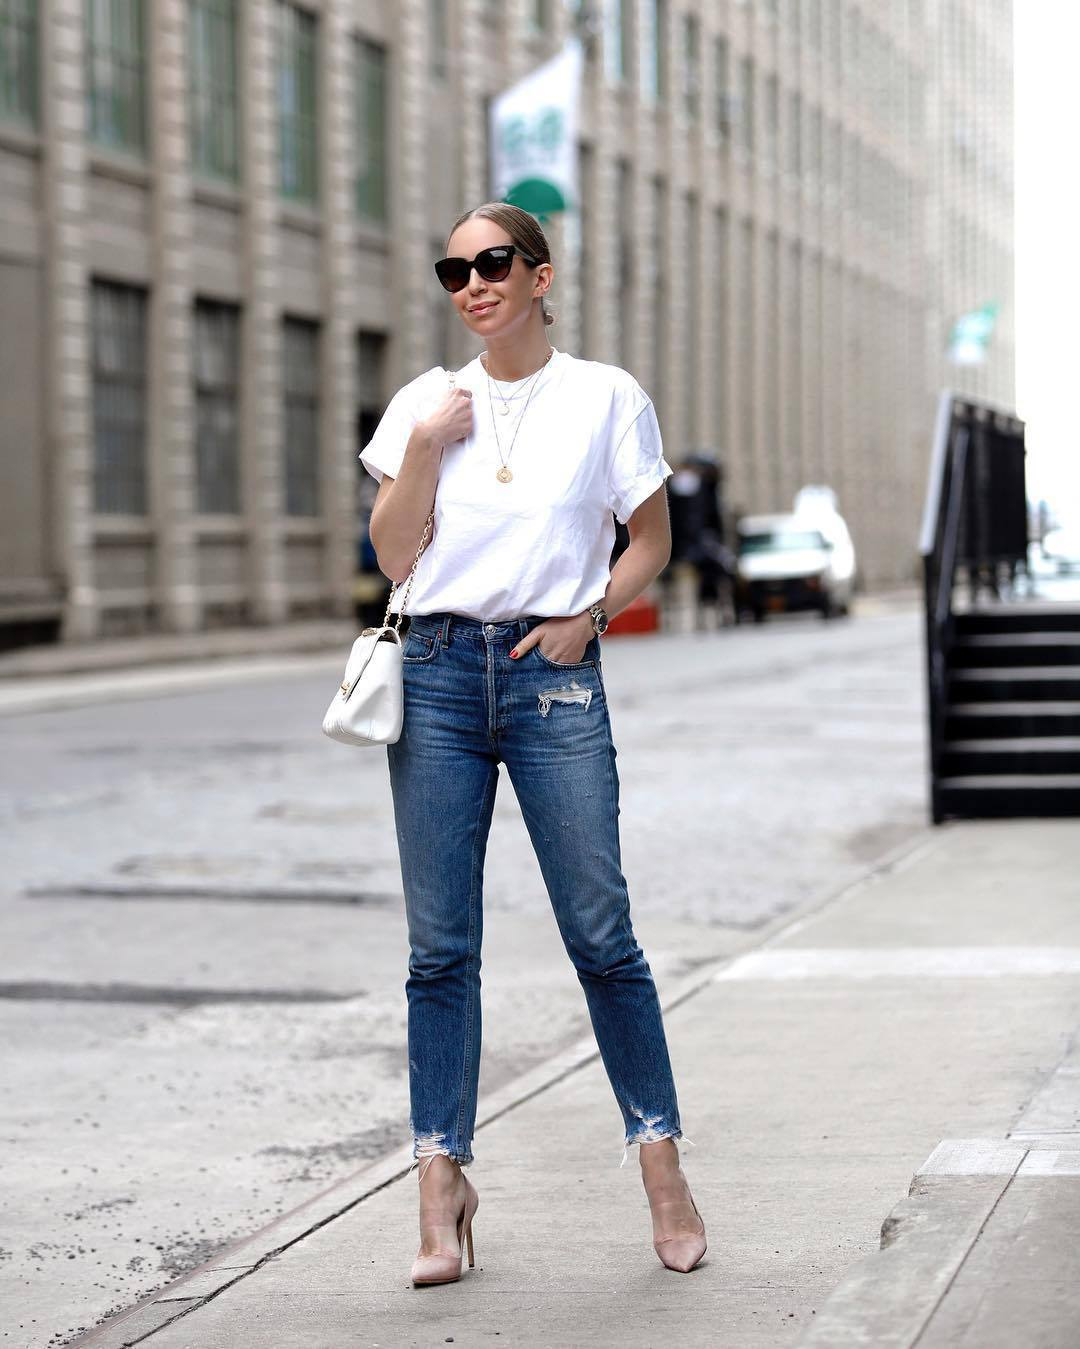 jeans high waisted jeans cropped jeans ripped jeans pumps white t-shirt white bag casual streetwear